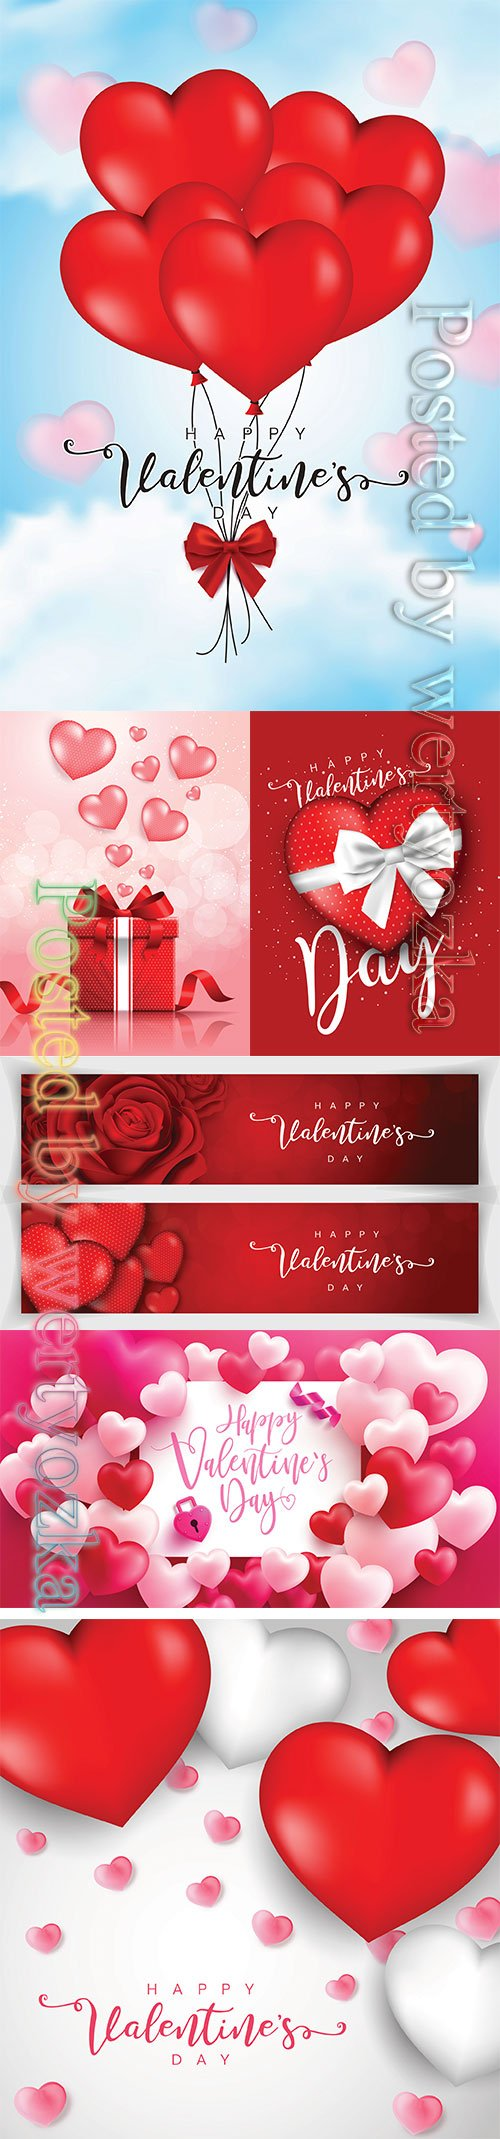 Valentine's Day poster or banner, background for love and Valentine's day concept